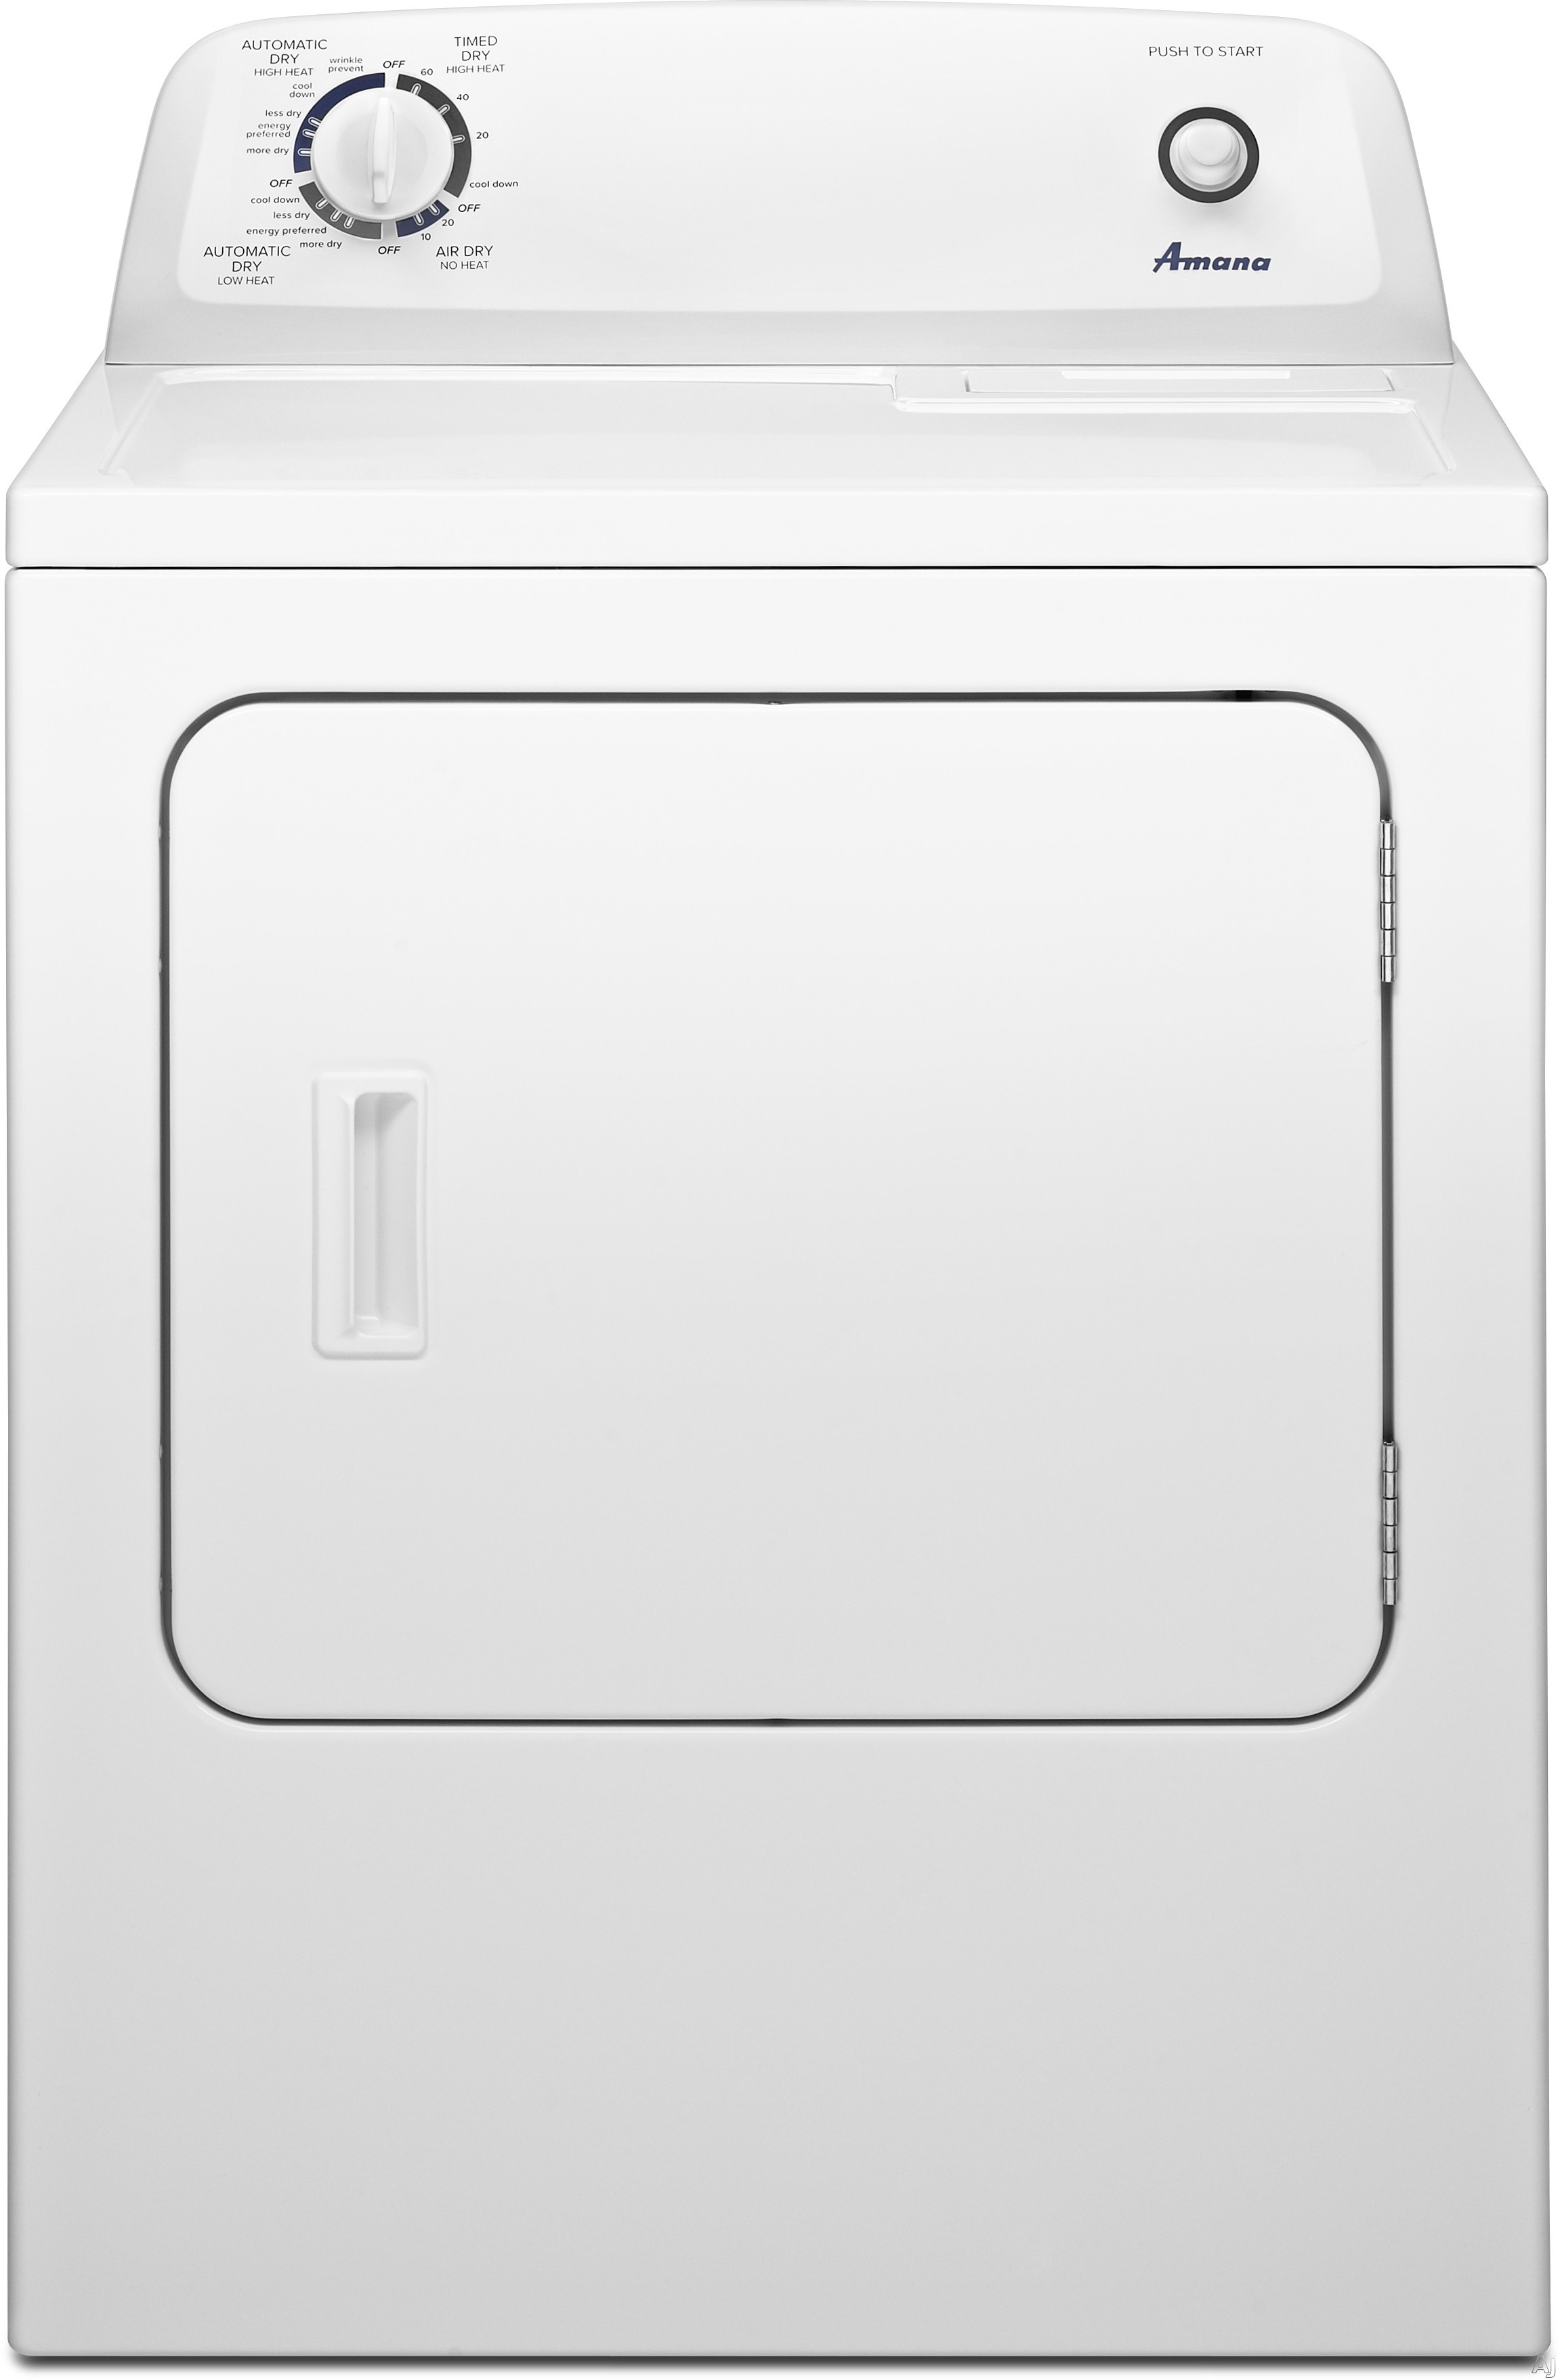 Picture of Amana NGD4655EW 29 Inch 65 cu ft Gas Dryer with 11 Dry Cycles 3 Temperature Settings Wrinkle Prevent Option and Automatic Dryness Control